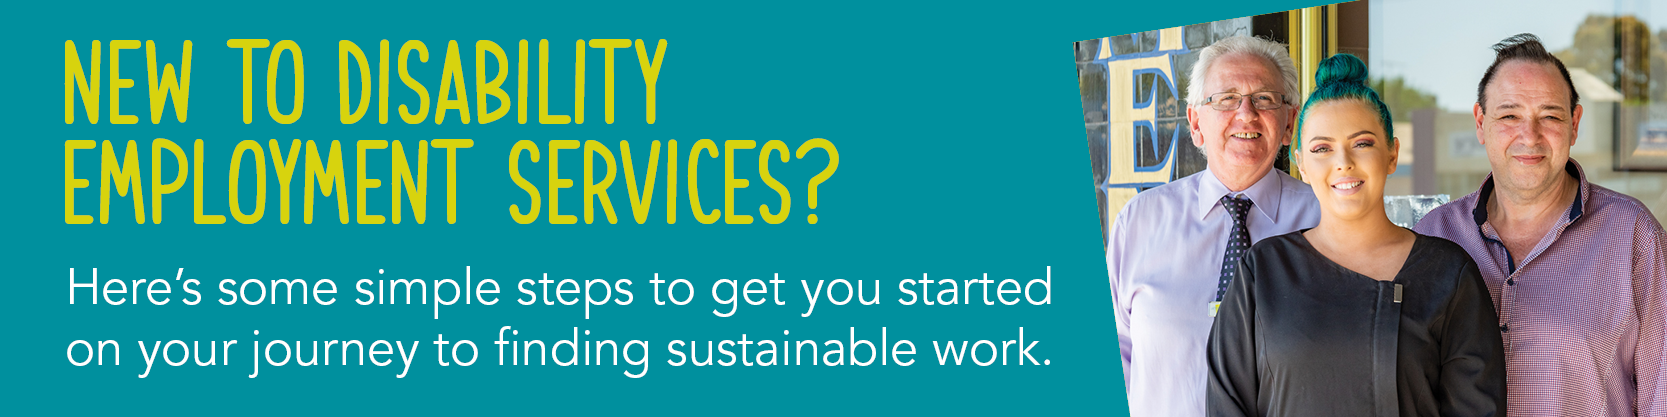 Copy: New to Disability Employment Services? Here's some simple steps to get you started on your journey to finding sustainable work. Image of three people smiling.